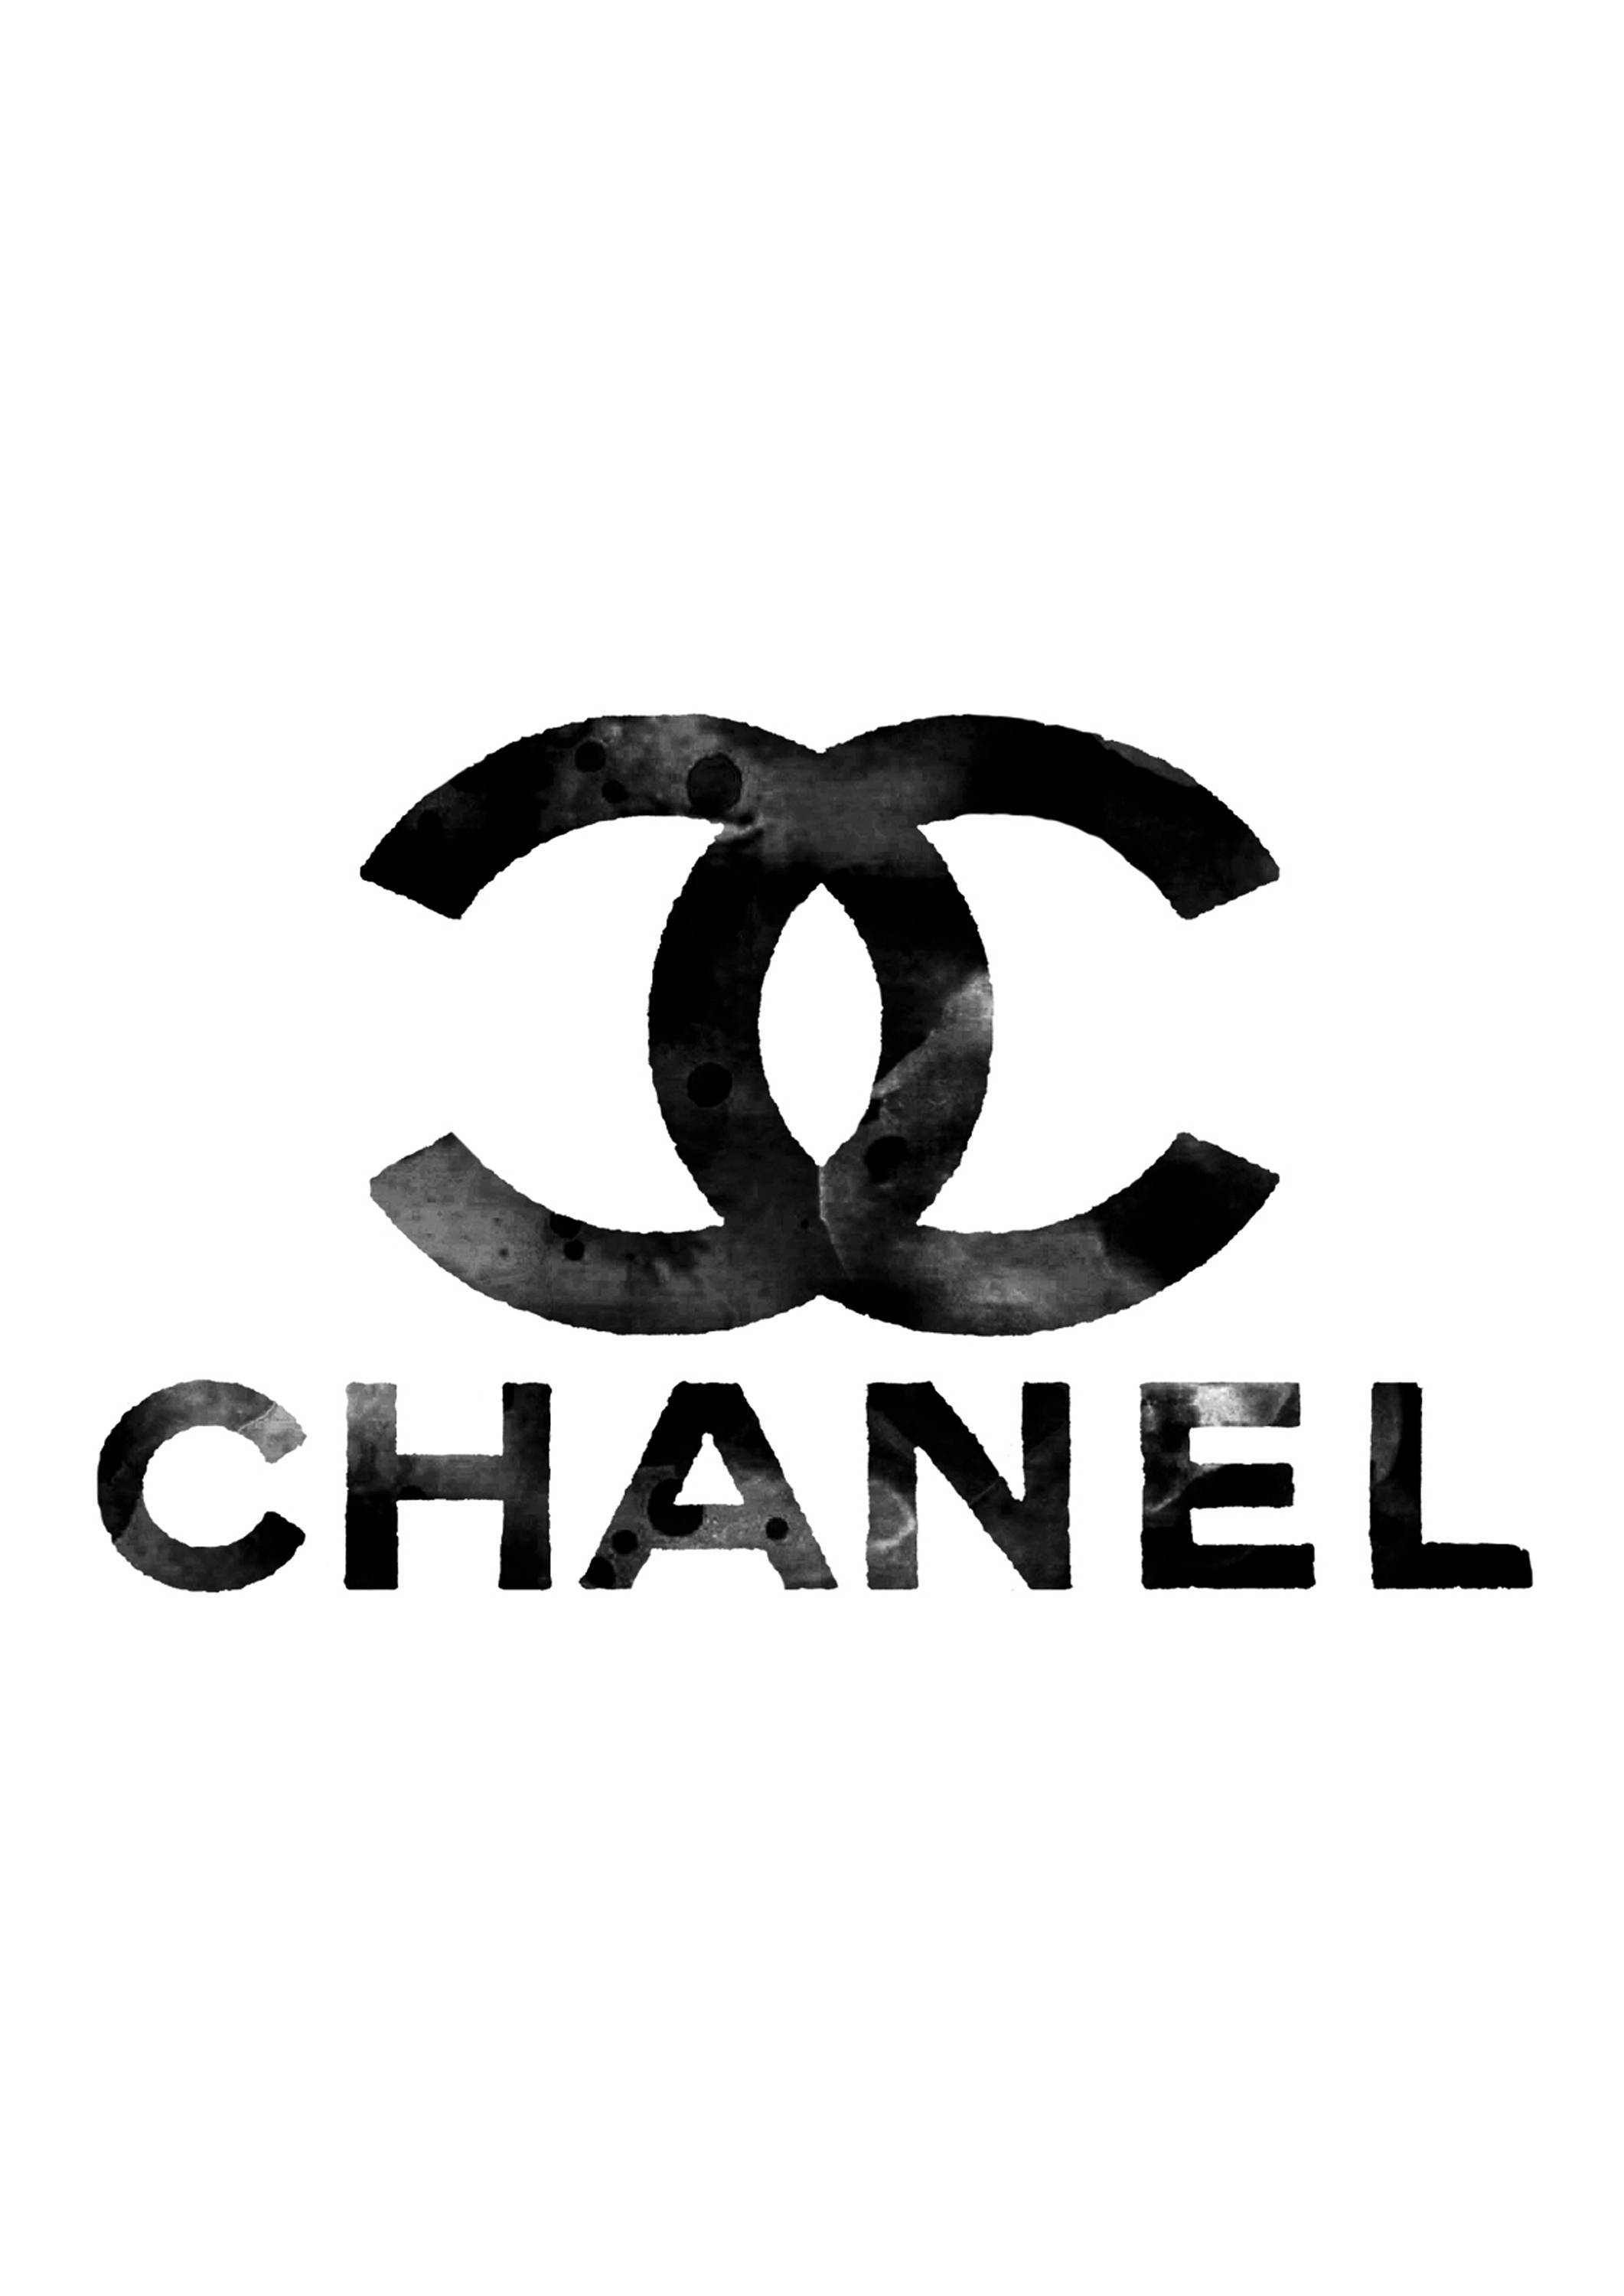 Chanel Logo Art Print Chanel Poster Chanel Warecolor Chanel Pertaining To Most Recently Released Chanel Wall Decor (View 6 of 25)